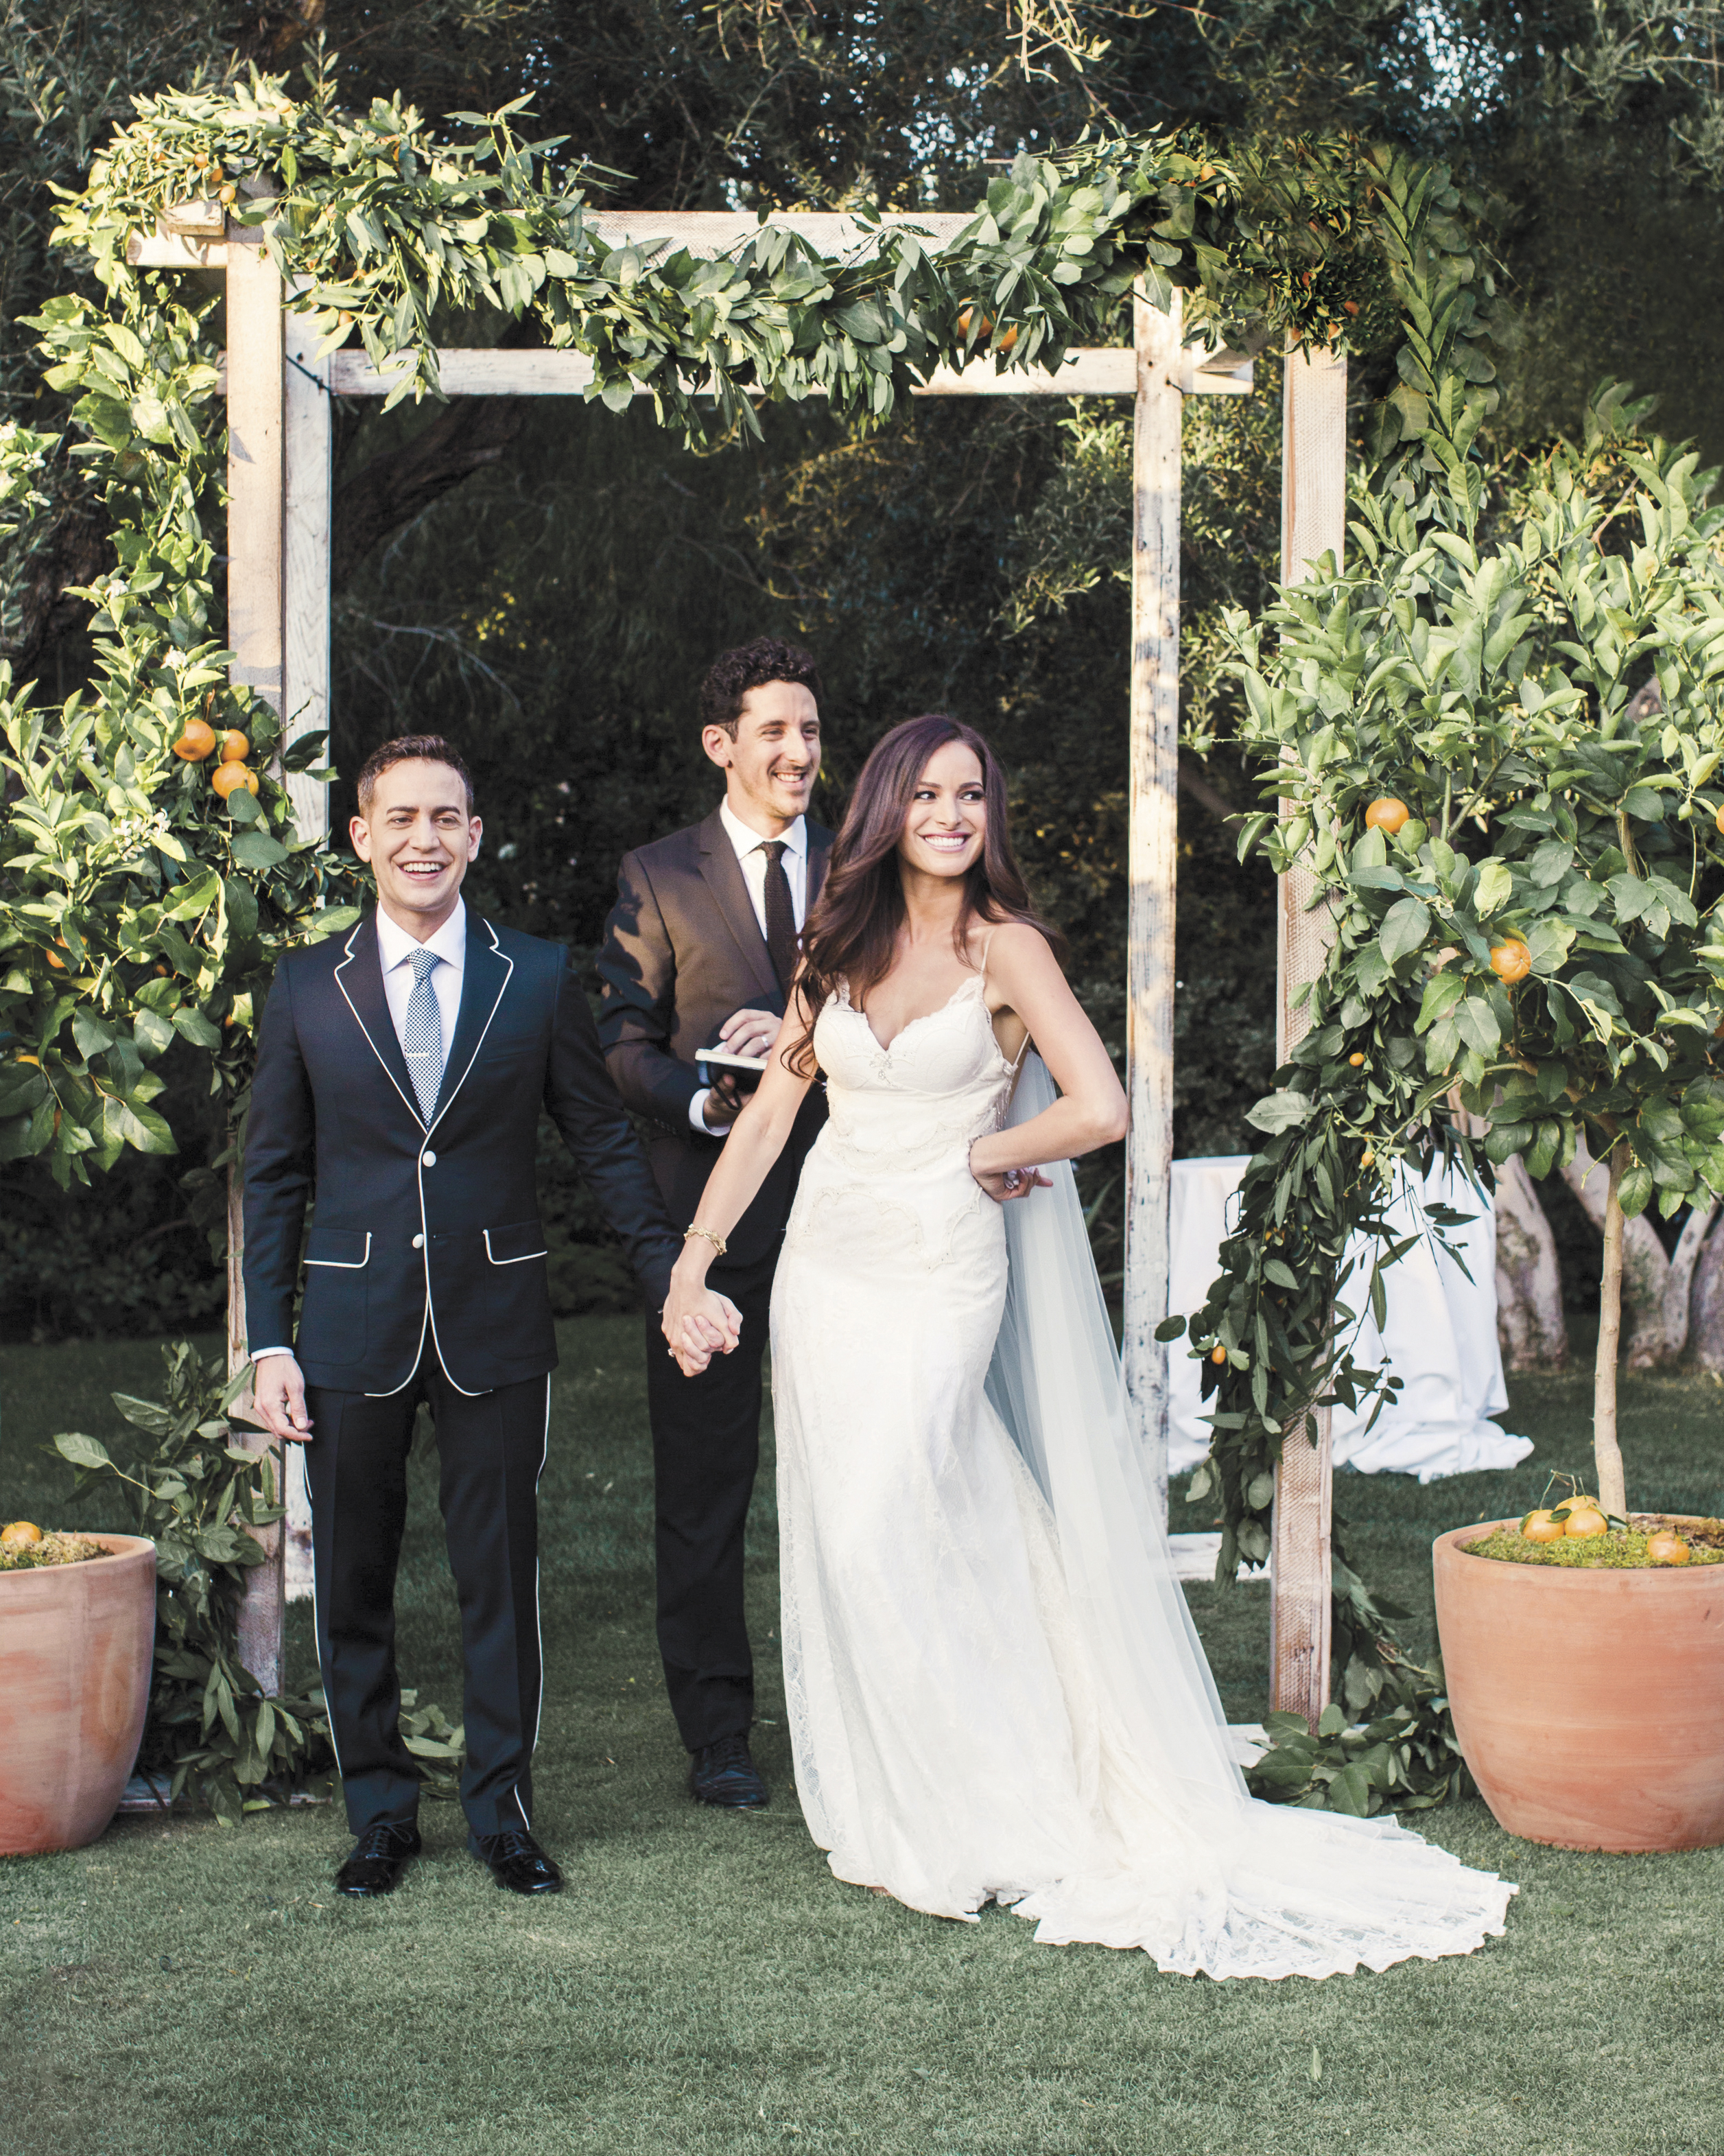 5 Things You Should Do to Officiate a Wedding Like a Pro